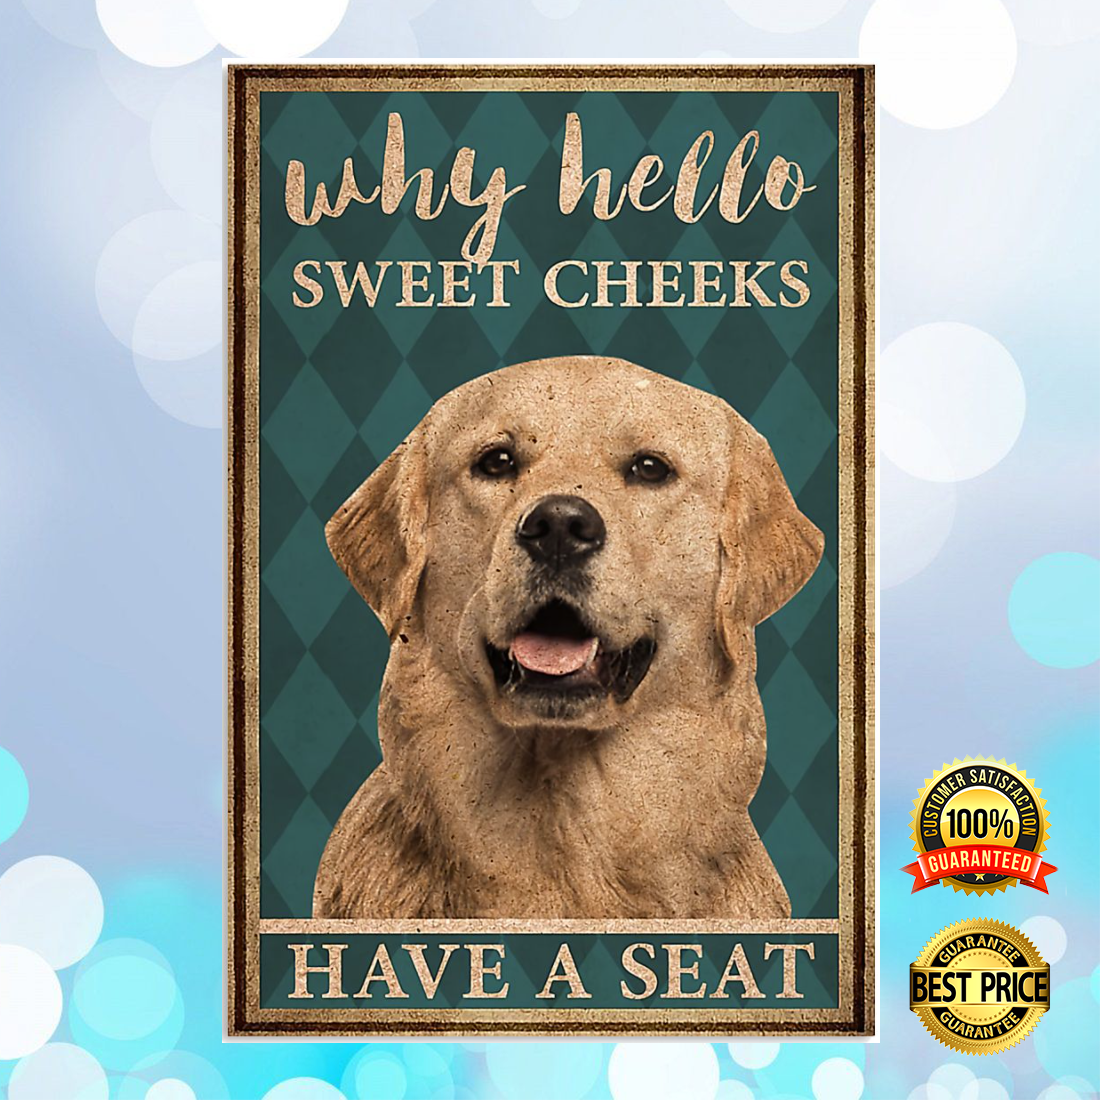 GOLDEN RETRIEVER WHY HELLO SWEET CHEEKS HAVE A SEAT POSTER 5